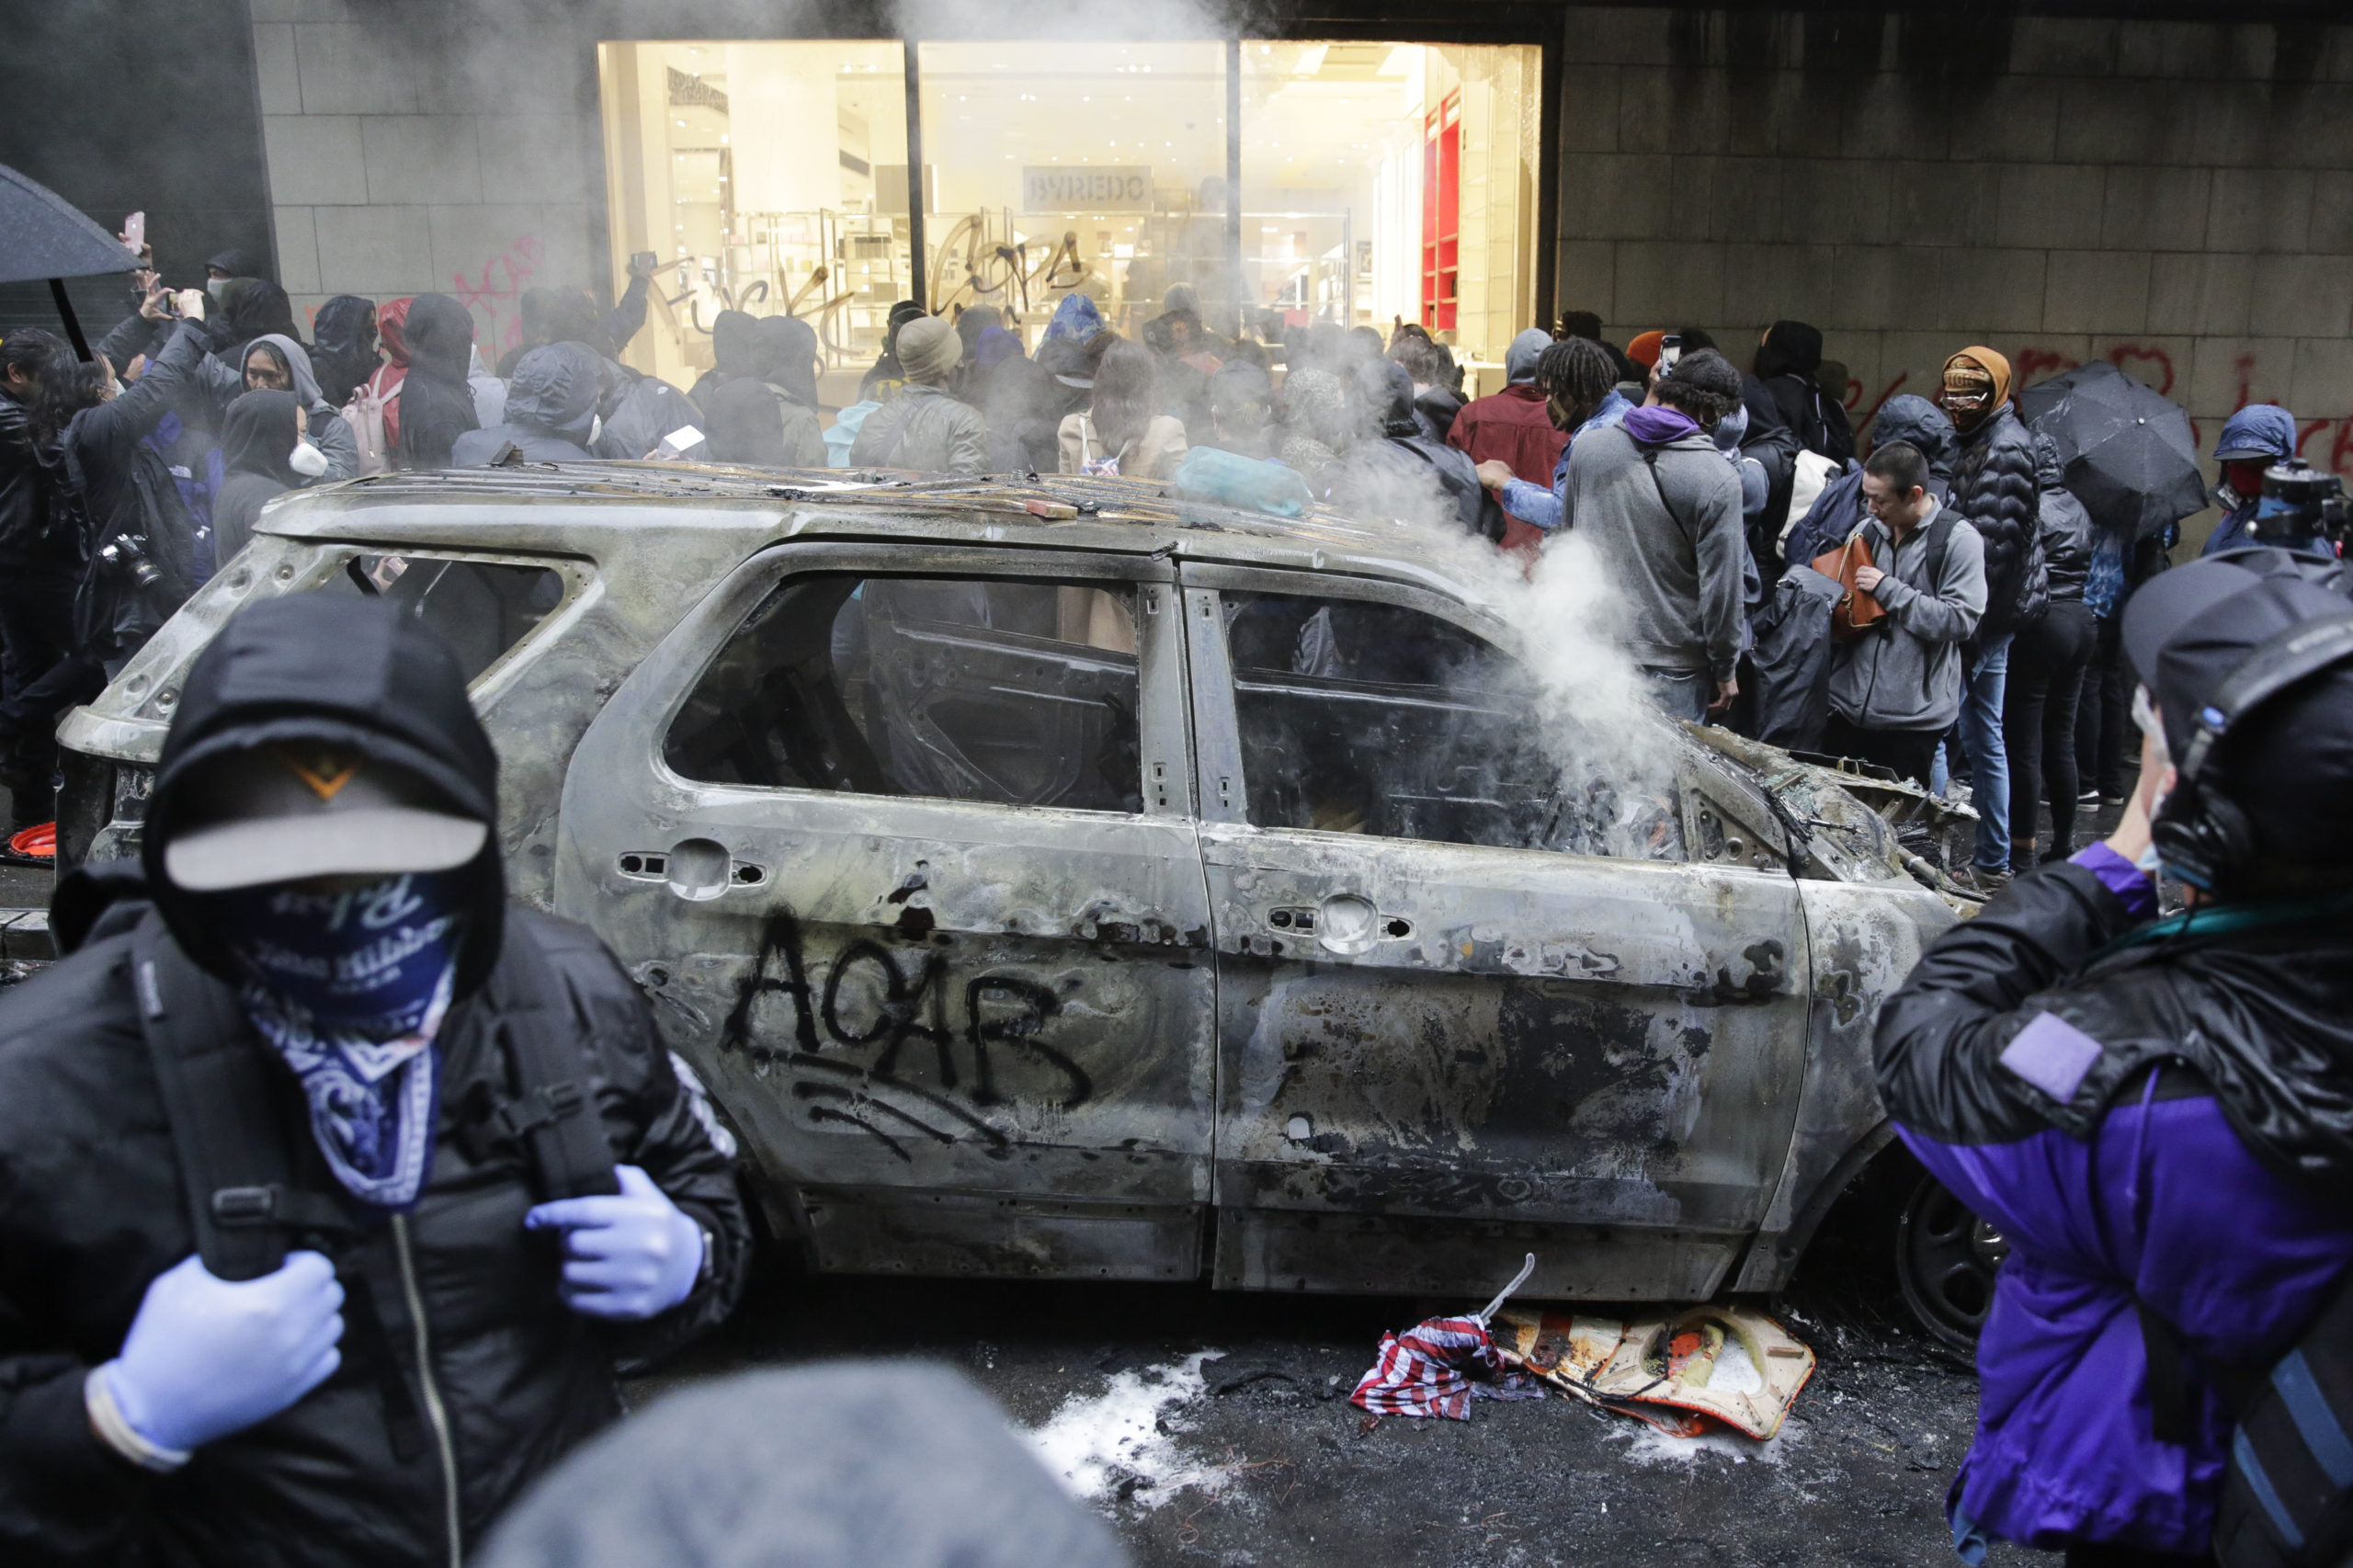 People loot a Nordstrom store near a burned police car in Seattle, Washington on May 30, 2020. (Jason Redmond/AFP via Getty Images)